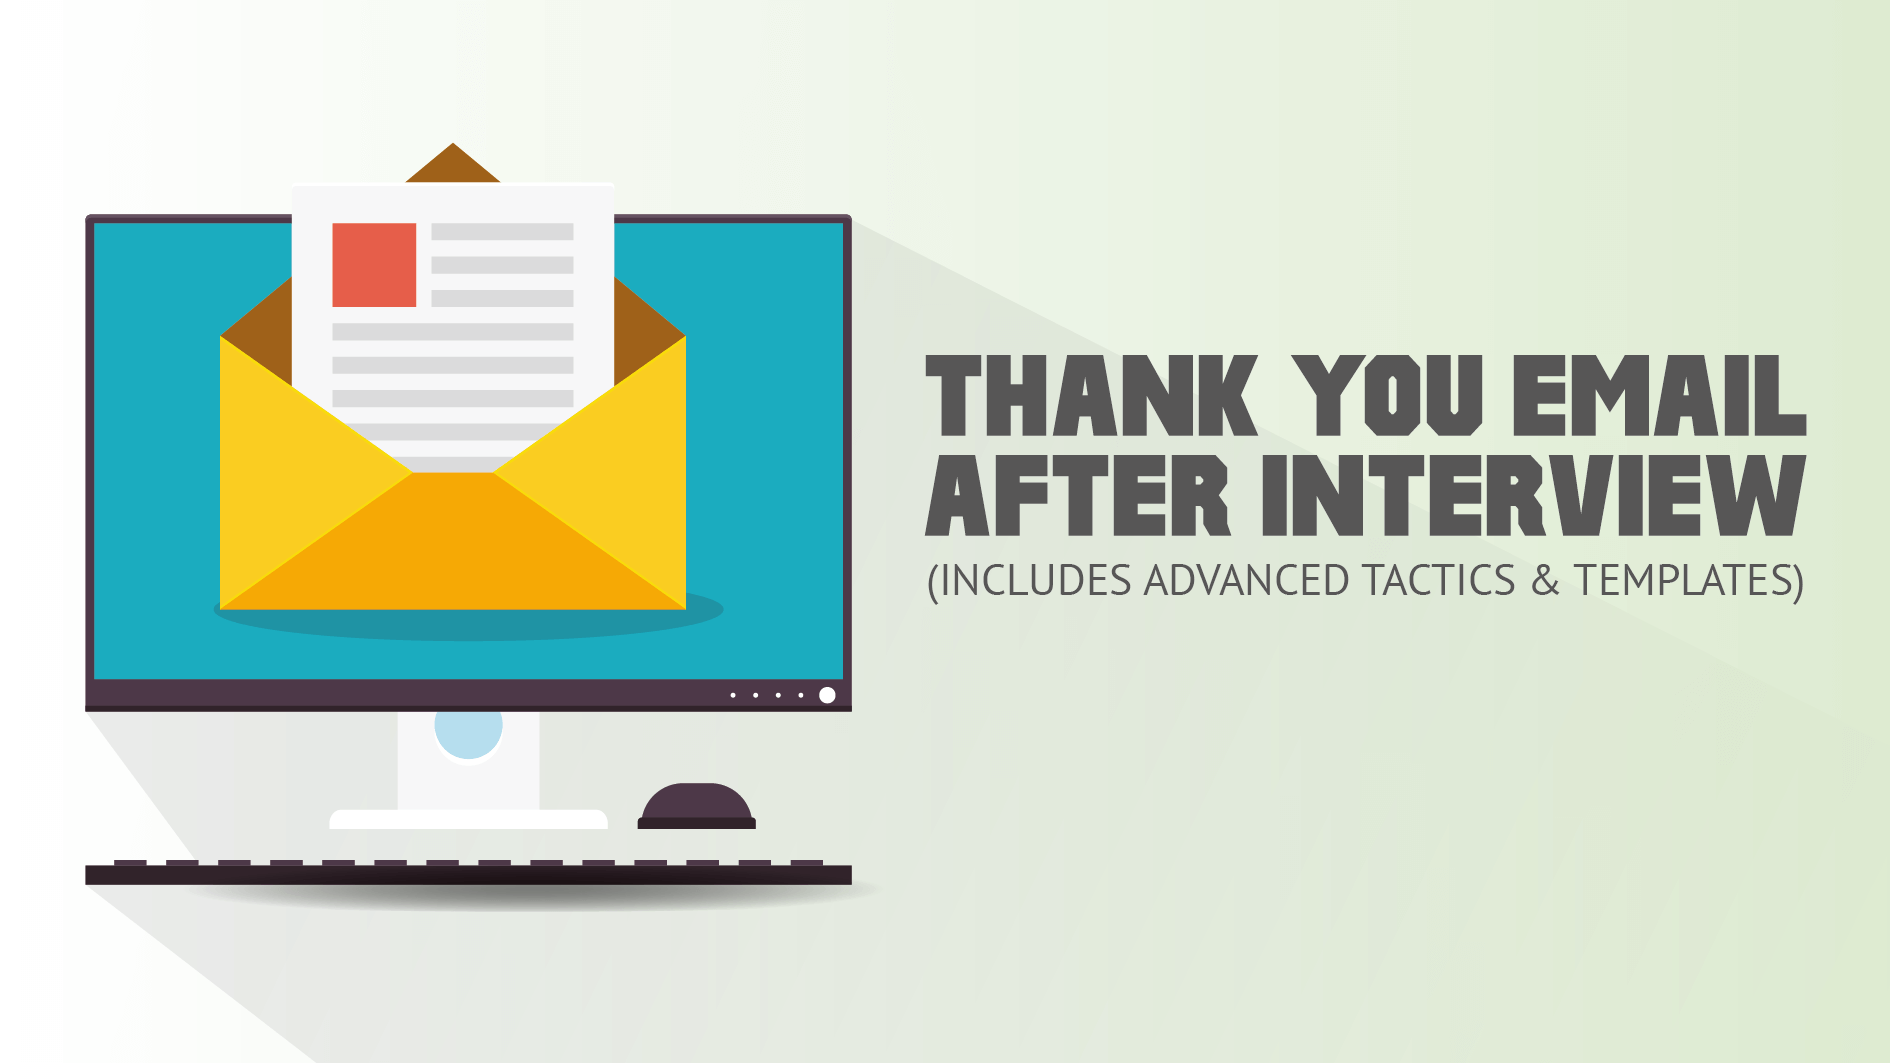 why you should send postinterview thank you emails